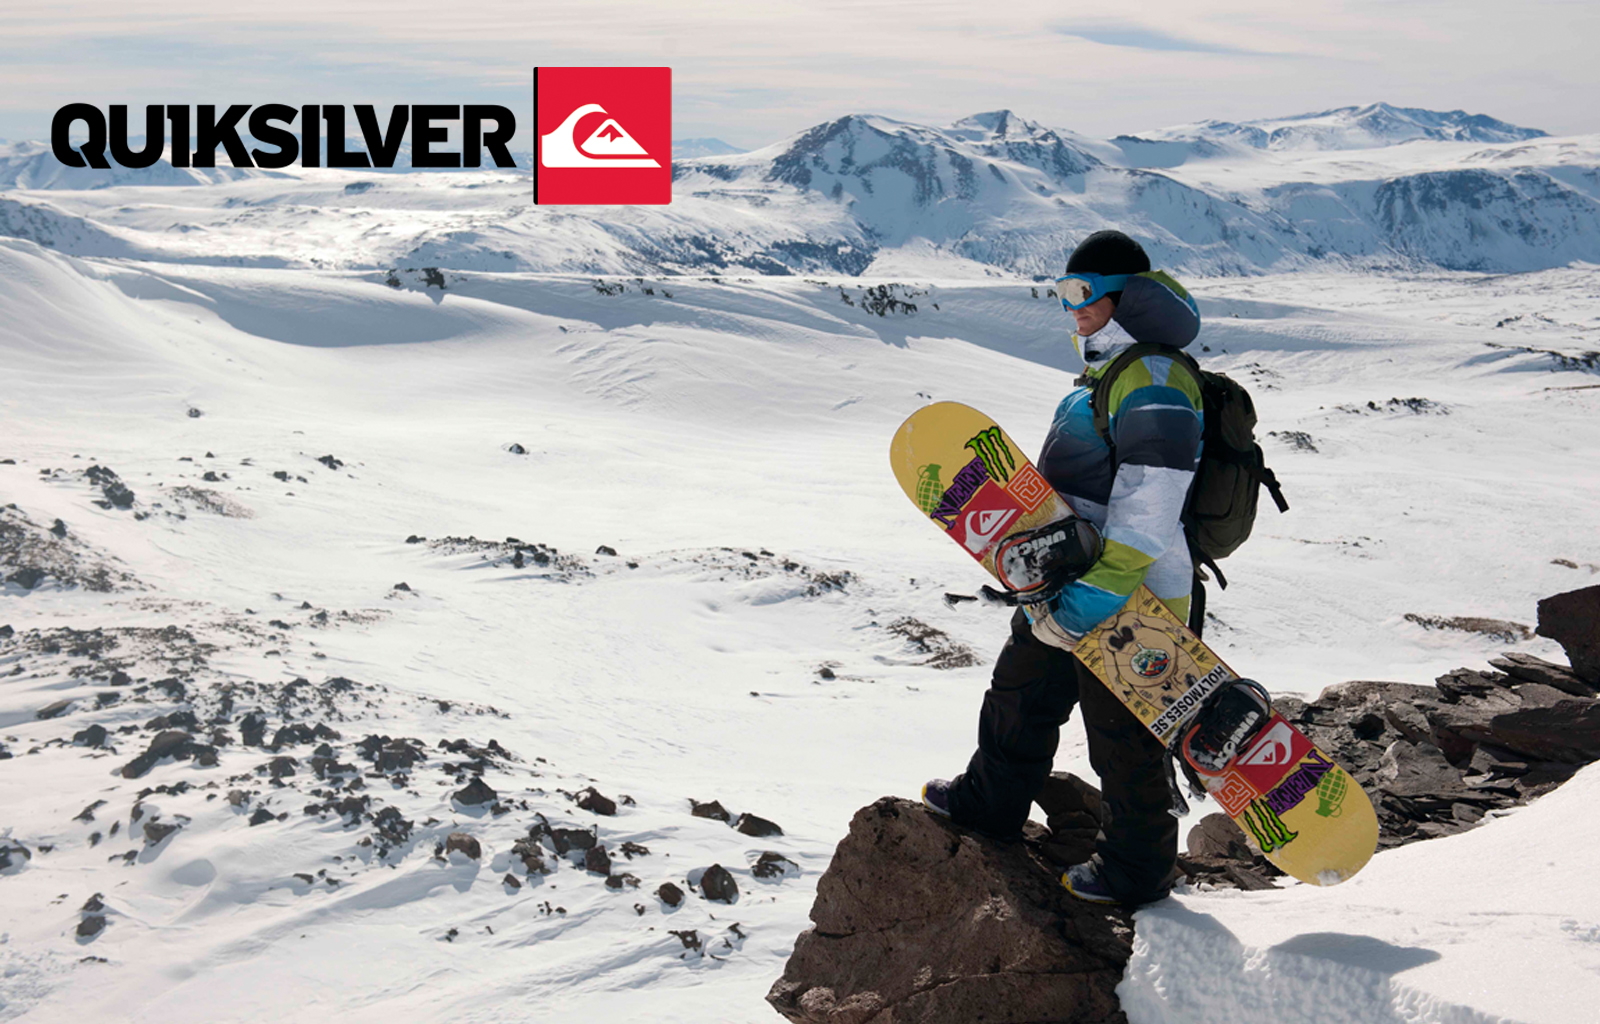 Quiksilver Snow Wallpaper